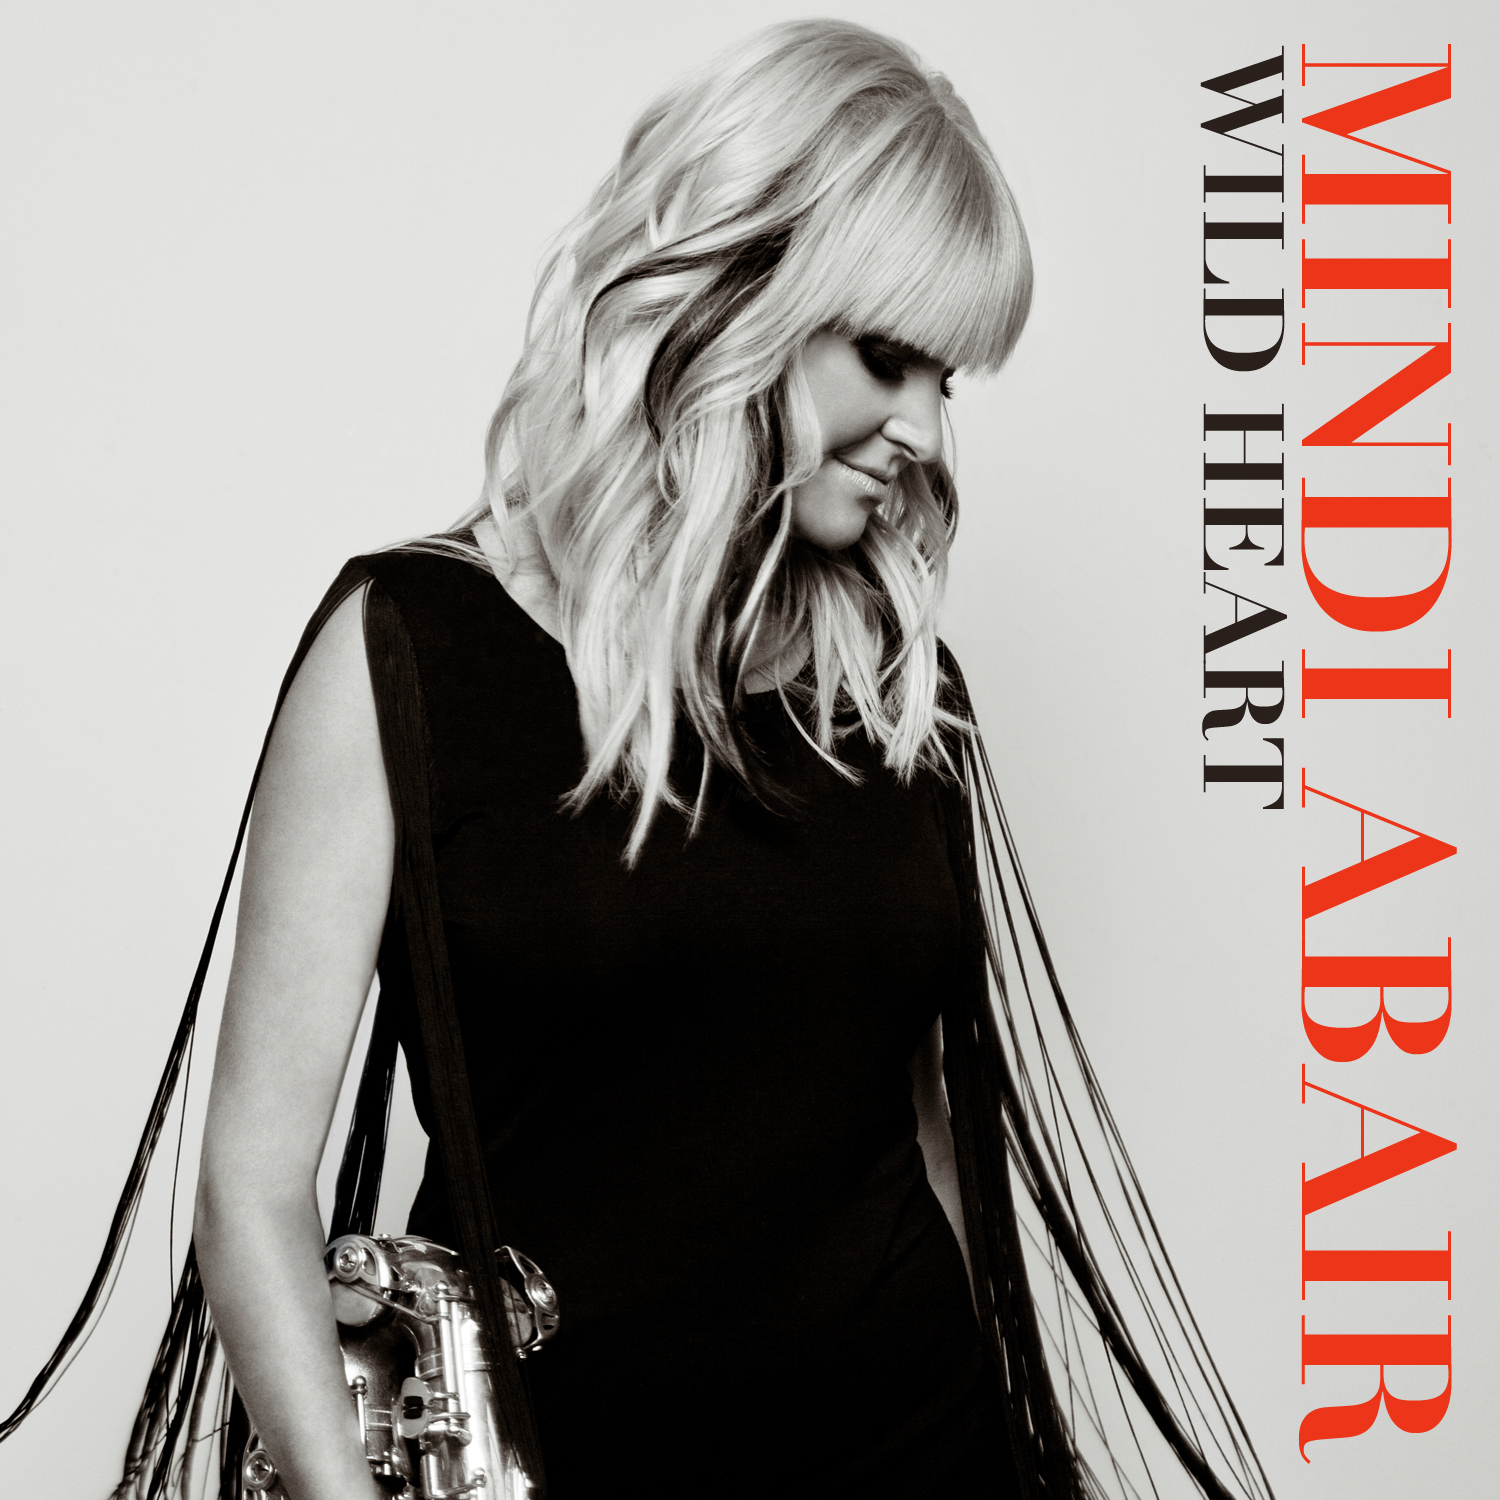 http://smoothjazzdaily.files.wordpress.com/2014/03/mindiabair_wildheartl.jpg